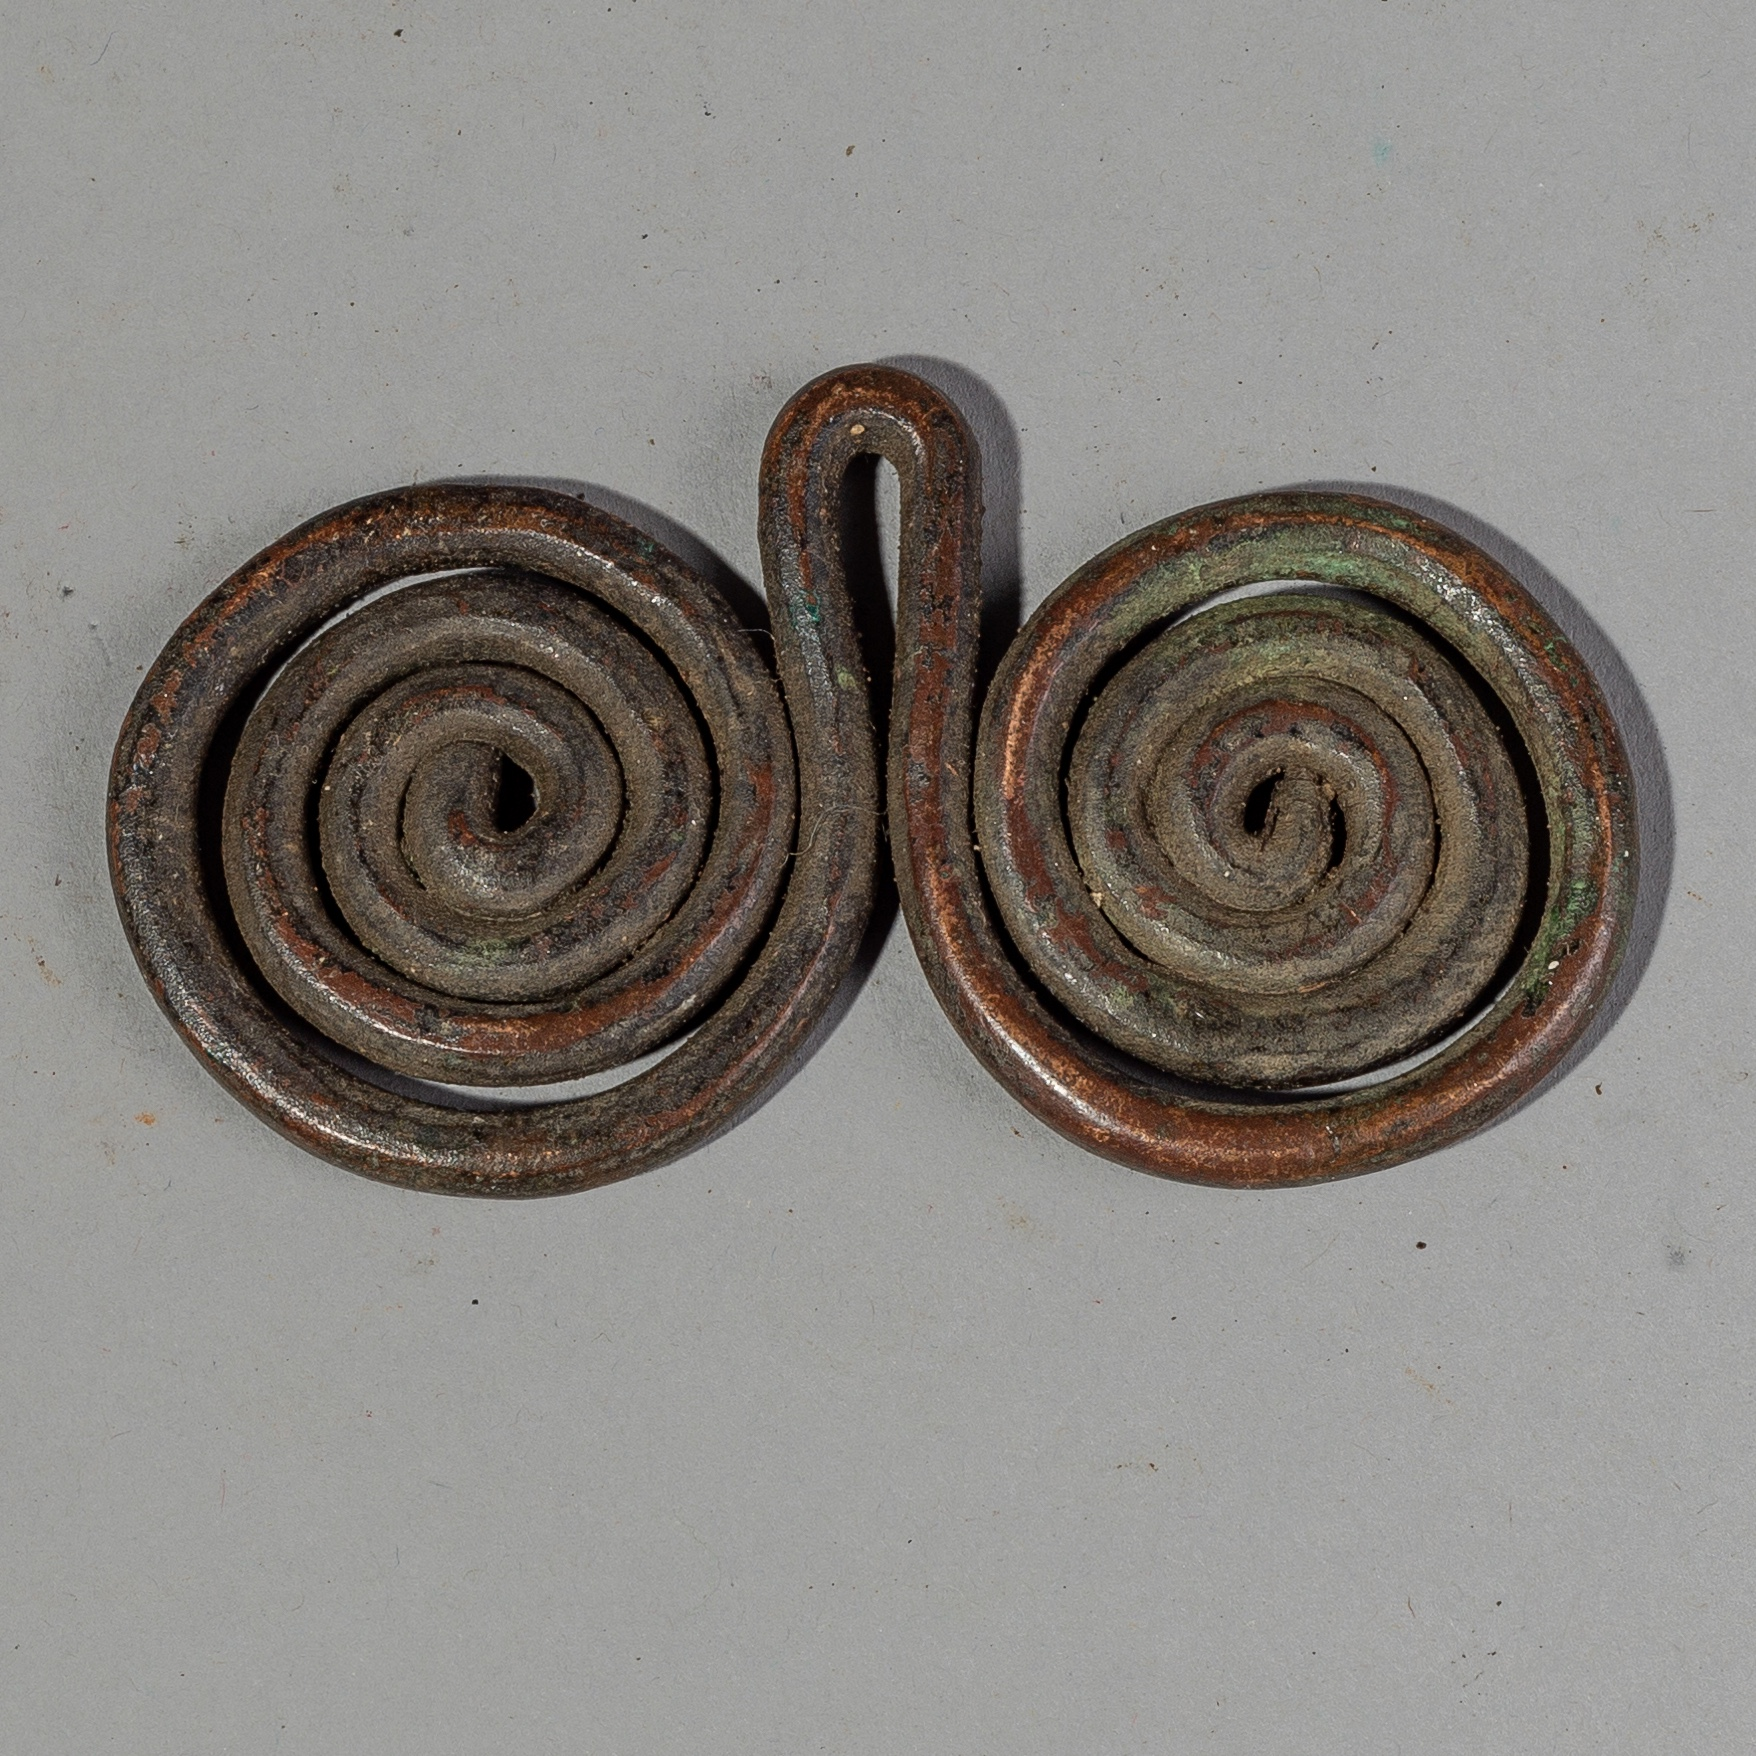 A SMALL COPPER CURRENCY SPIRALS, MATAKAN TRIBE OF CAMEROON ( No 1757 )